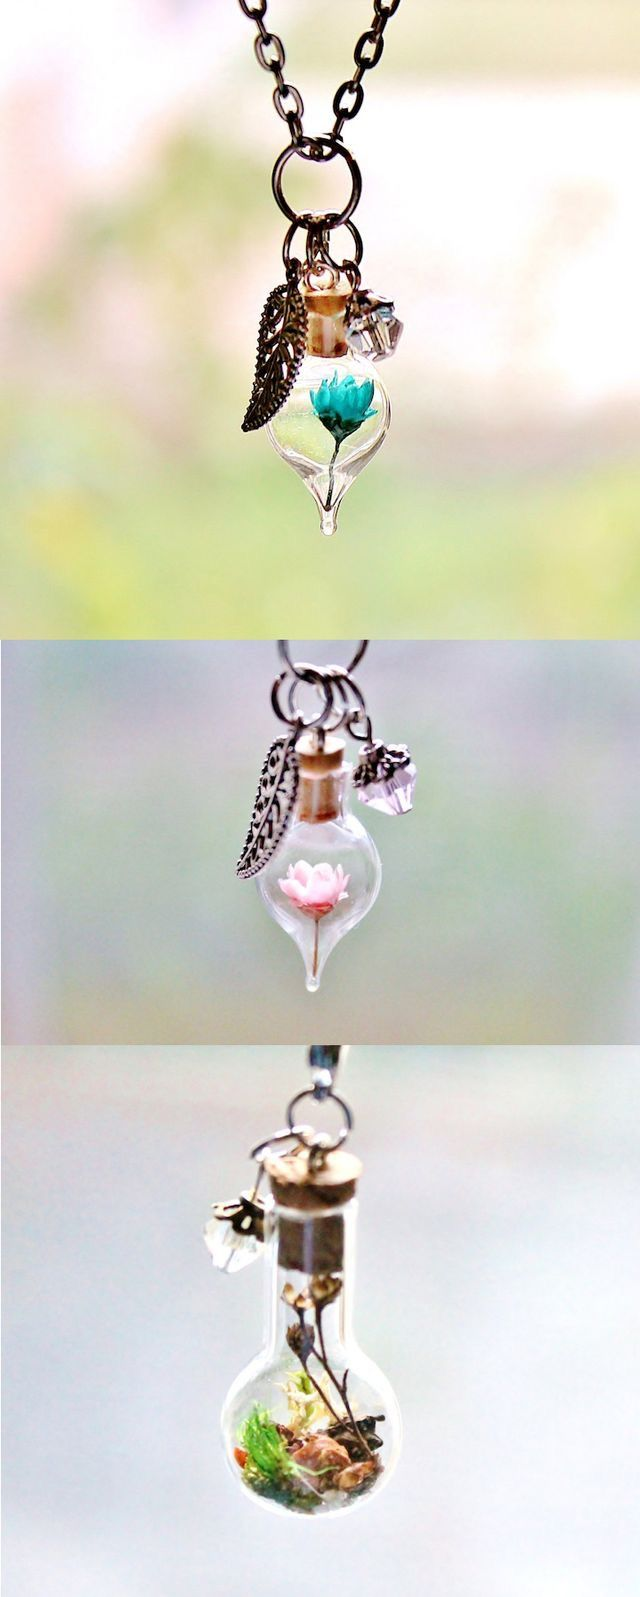 I like the middle one, it's so pretty!!